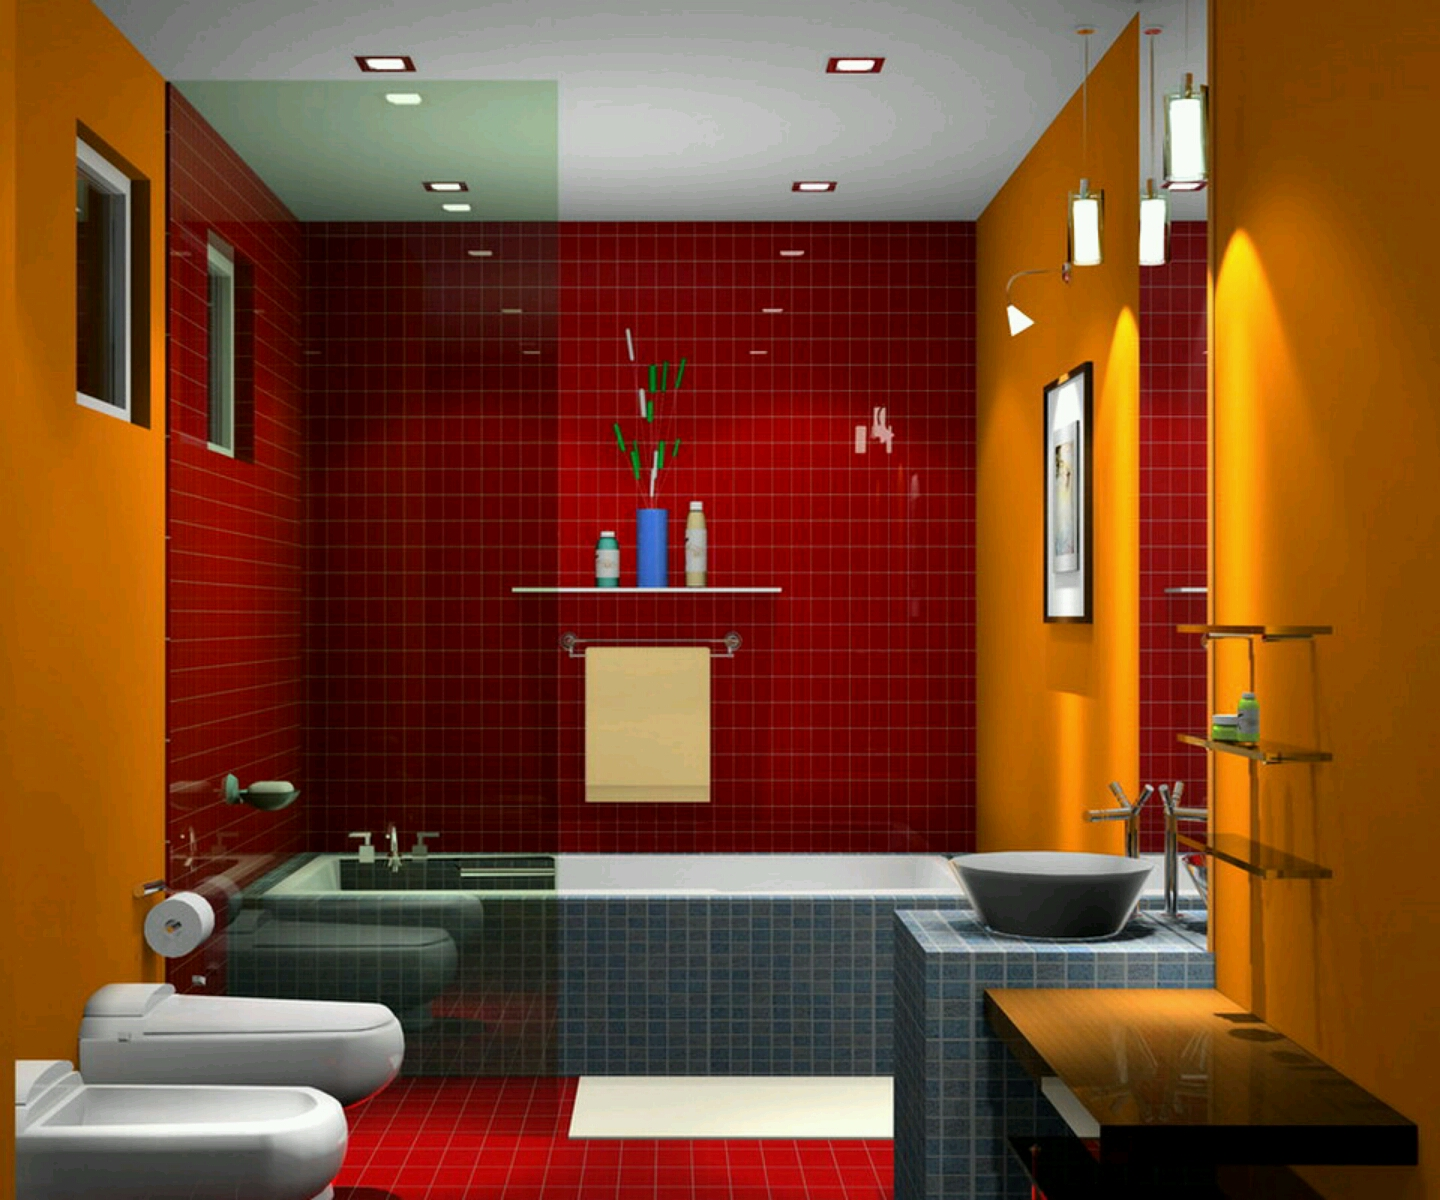 Luxury bathrooms designs ideas diy home decor for Small luxury bathrooms ideas